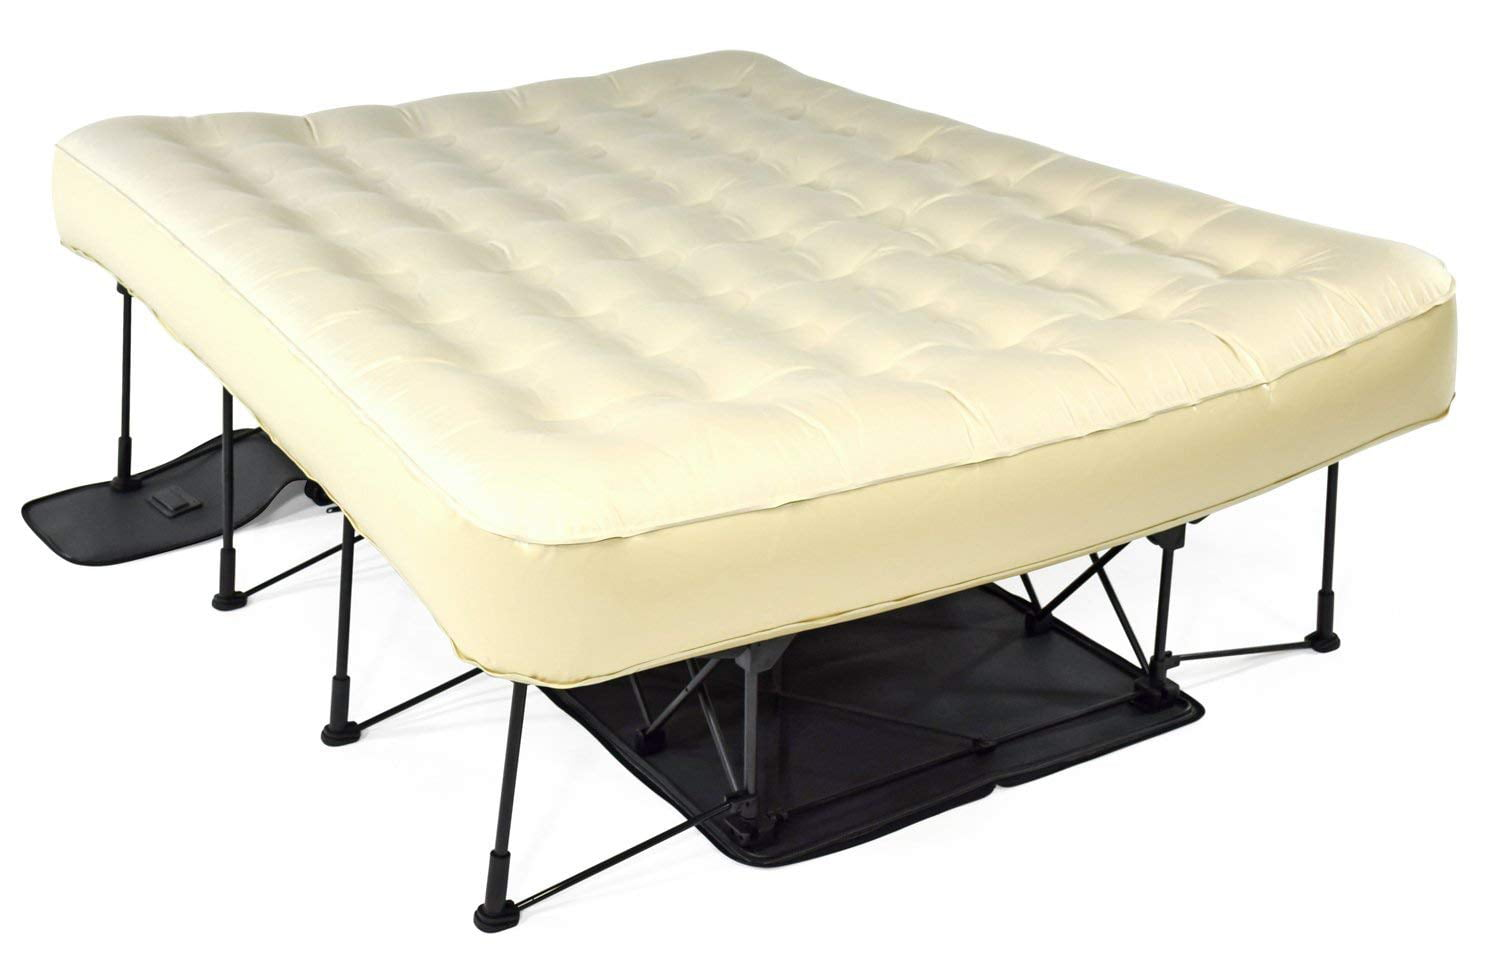 Ivation Ez Bed Queen Air Mattress With Frame Rolling Case